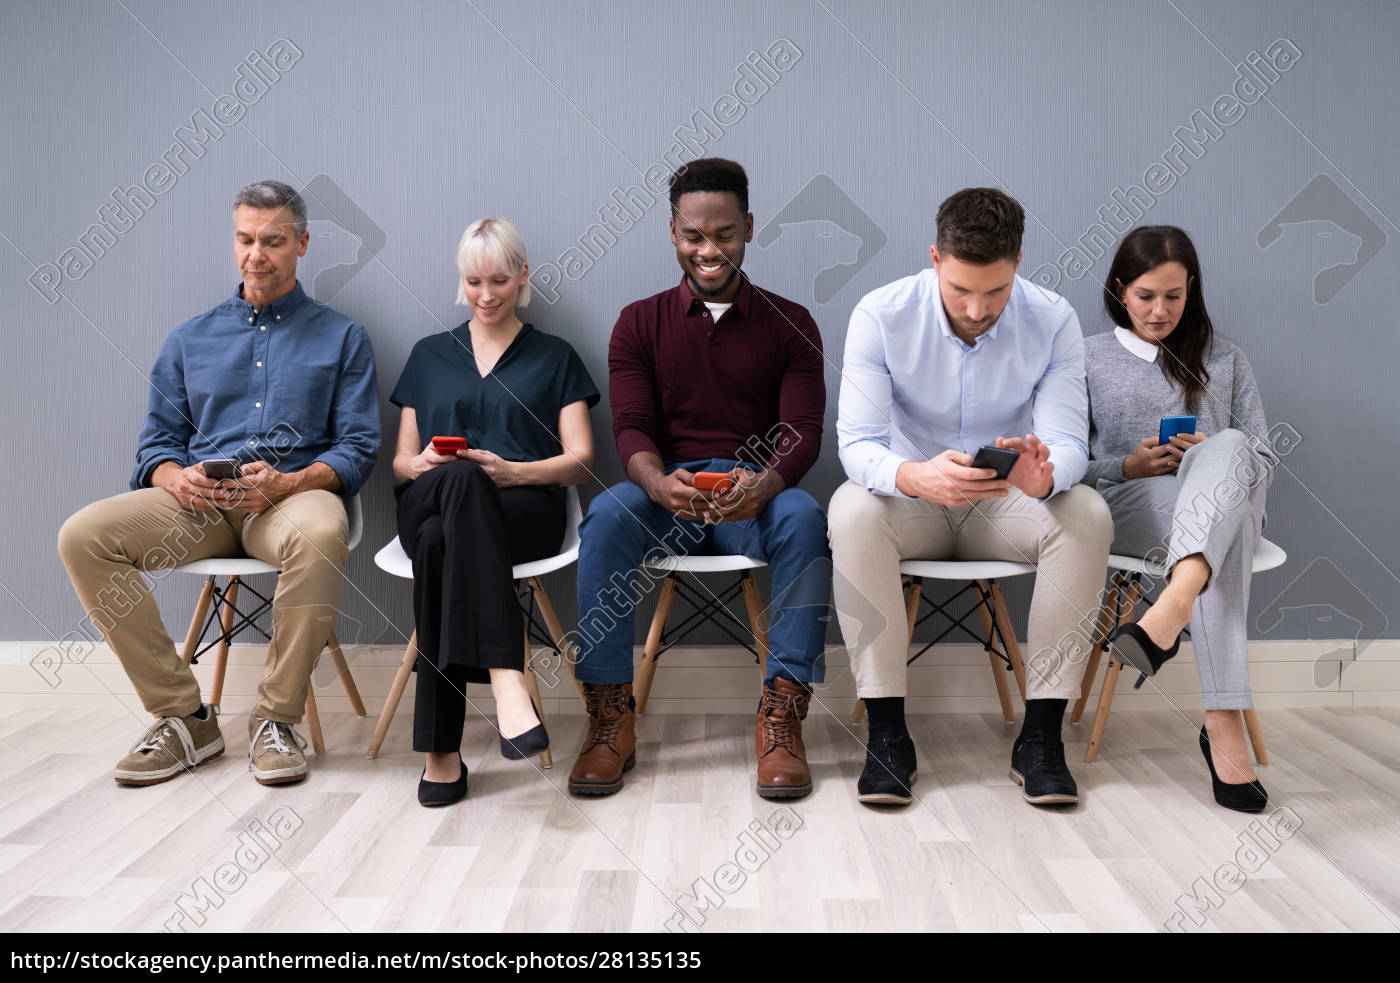 applicants, using, cell, phones - 28135135